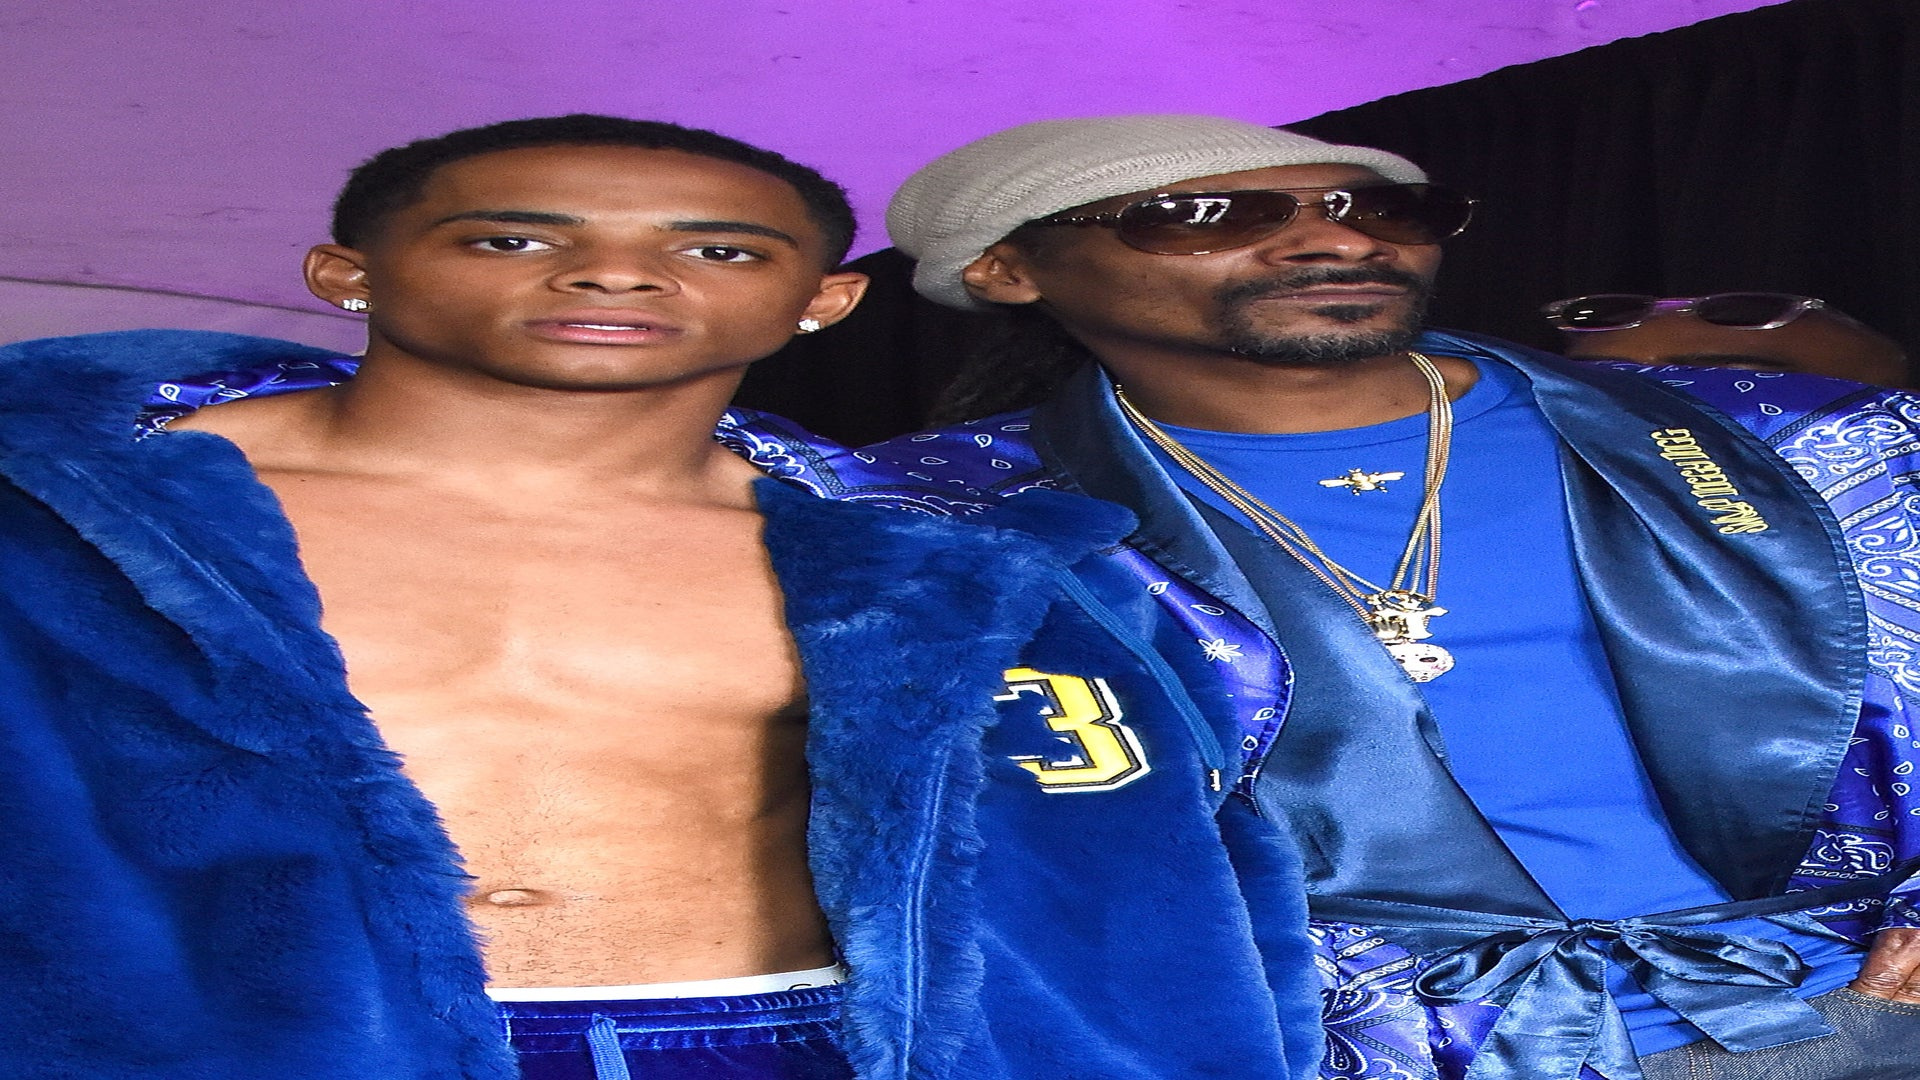 ICYMI: Snoop Dogg and Son Cordell Present Fashion Show During MADE LA and It's So California